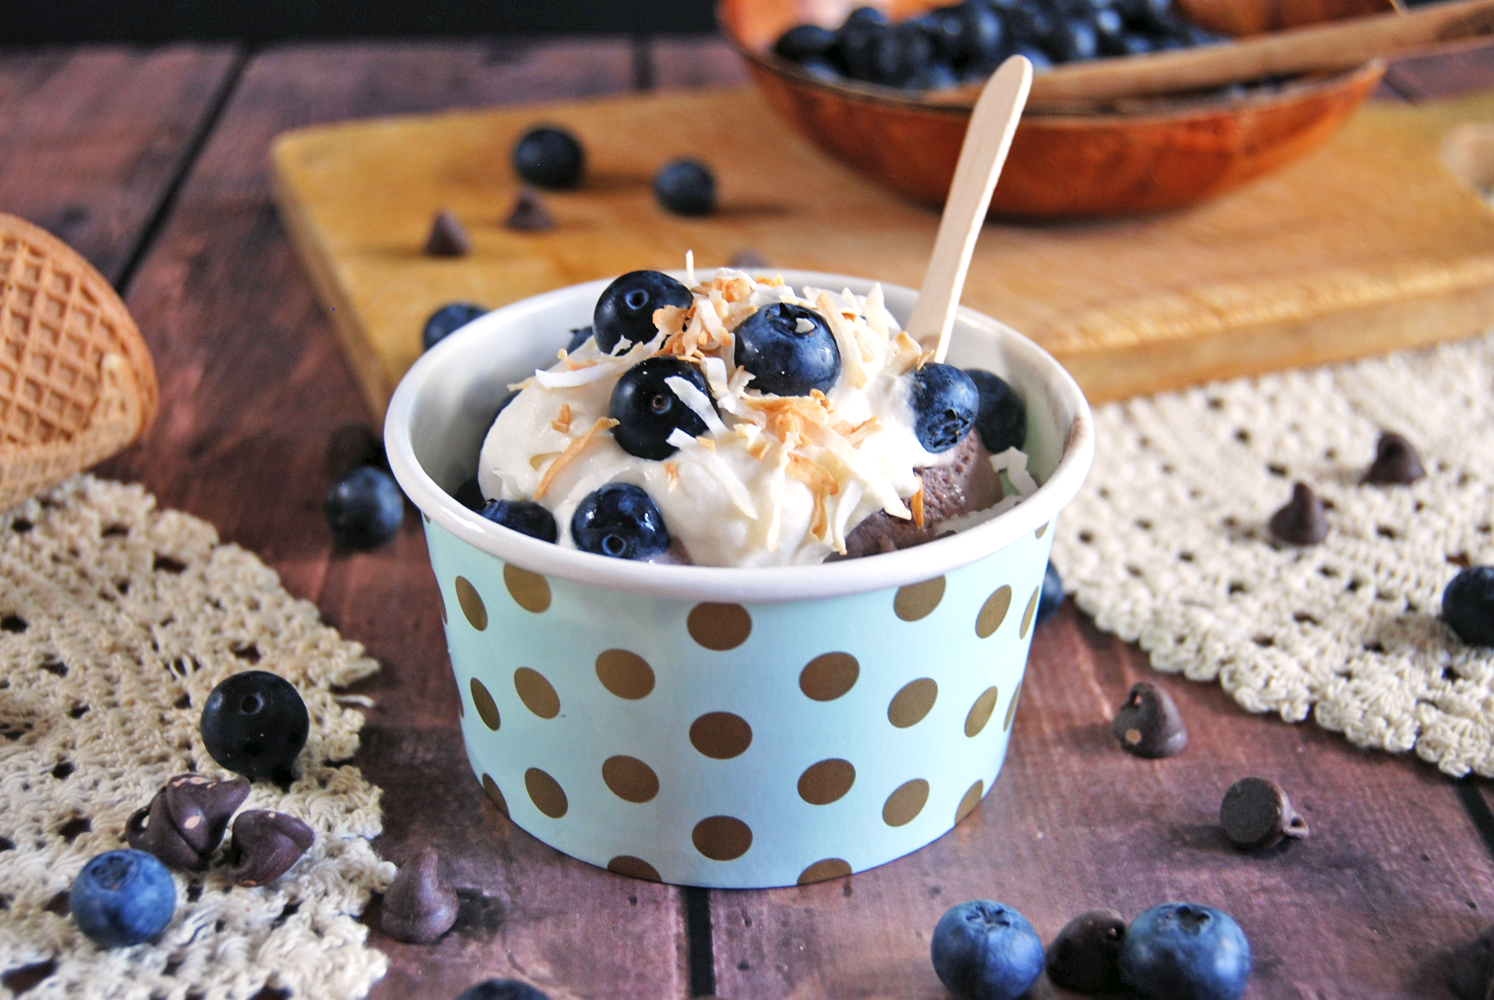 Chocolate Blueberry Ice Cream with Marshmallow Cream and Toasted Coconut | The Charming Detroiter